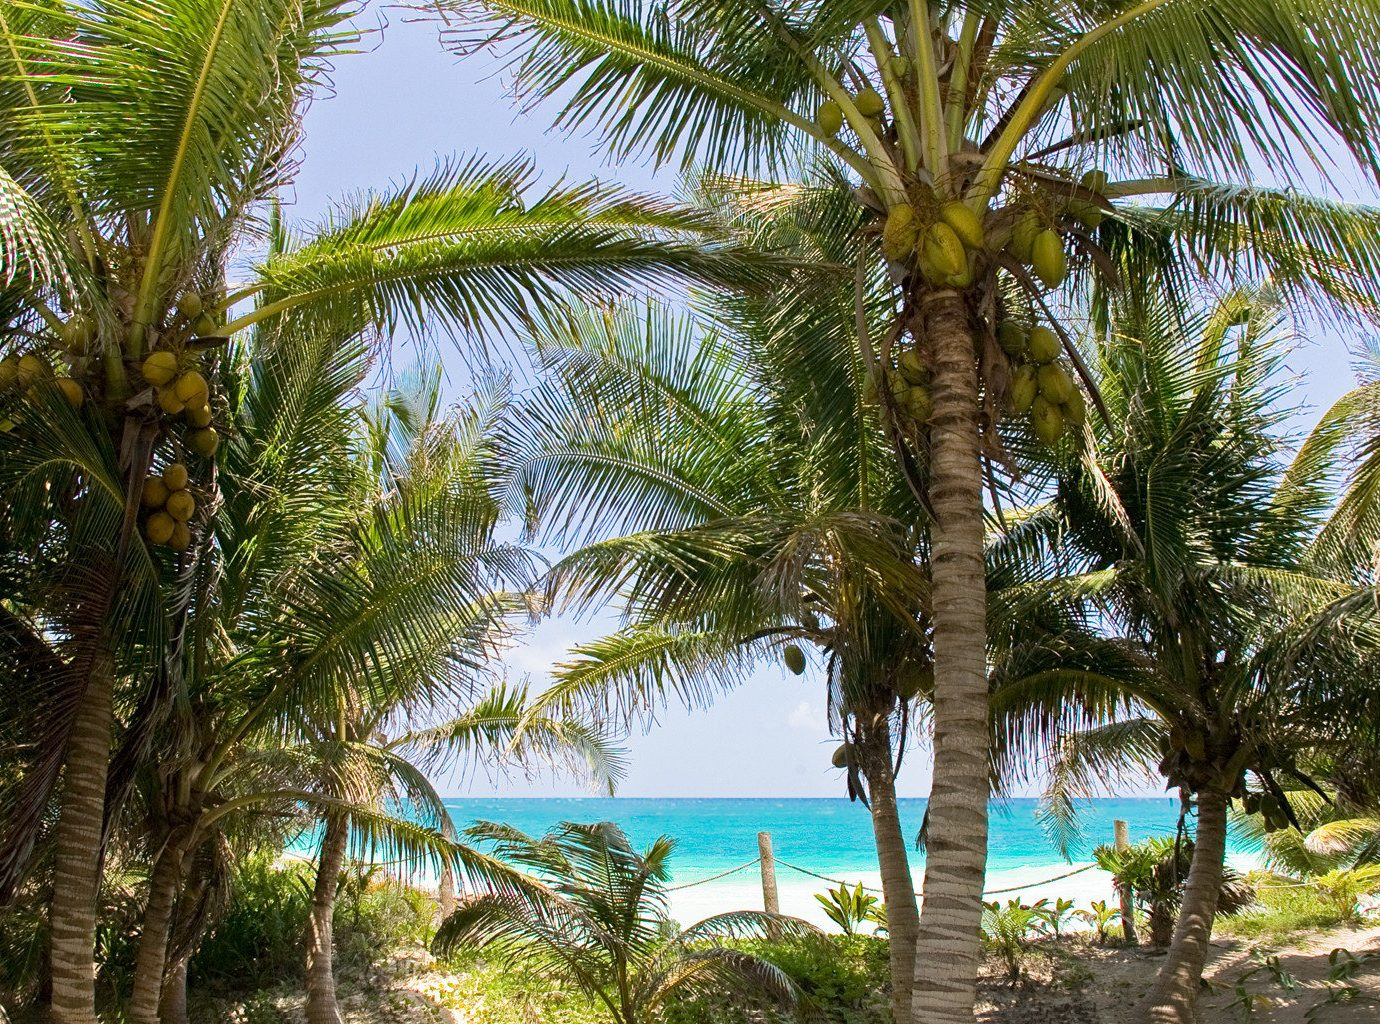 Beachfront City Grounds Island Mexico Trip Ideas Tulum Waterfront tree palm outdoor plant Beach water Ocean palm family vegetation botany tropics arecales vacation land plant date palm Resort shade borassus flabellifer produce sandy caribbean Jungle lined flowering plant